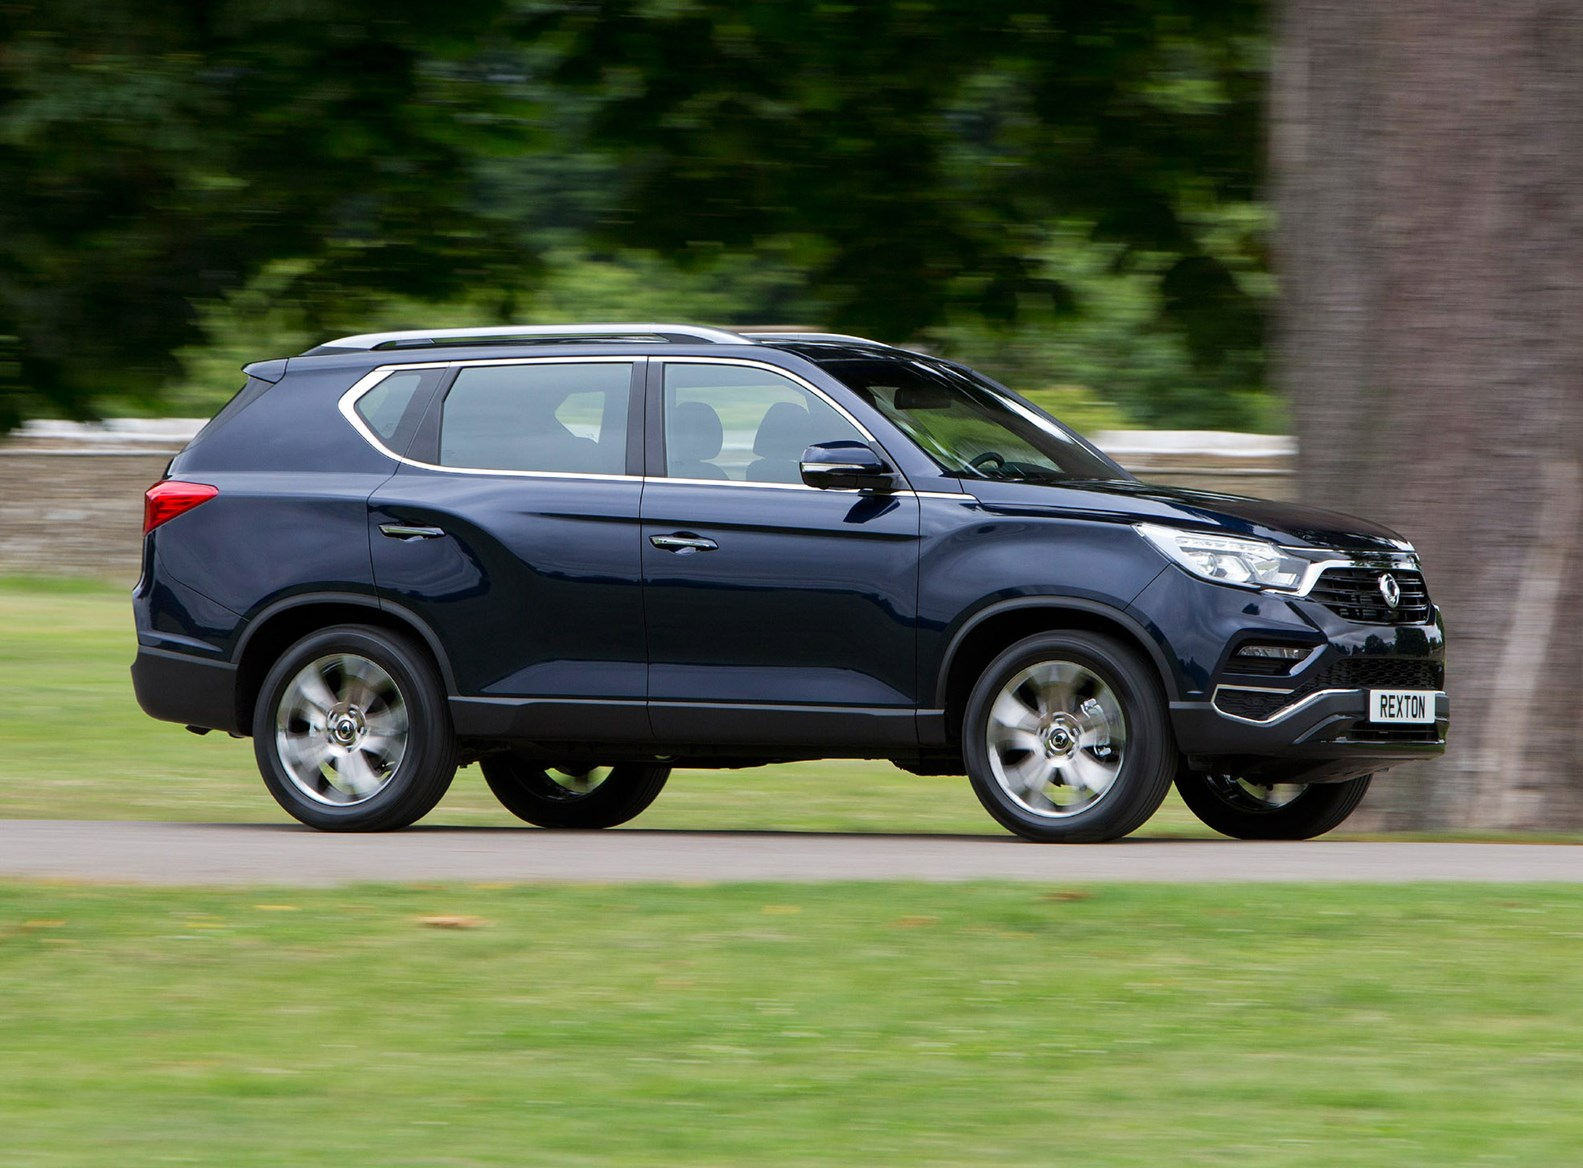 Ssangyong Rexton Suv 2018 Features Equipment And Accessories